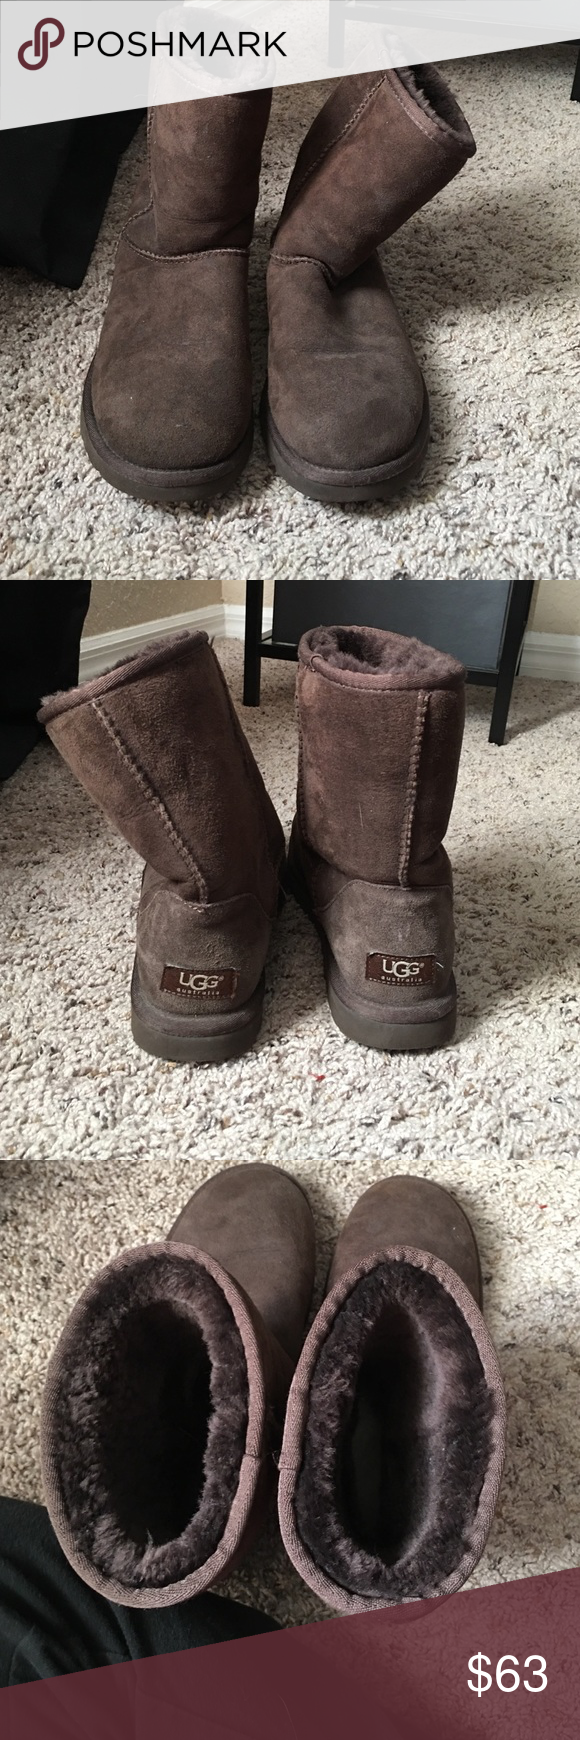 Ugg Women's classic short Hardly worn chocolate colored classic short ugg. Authentic. Great conditions moved to Florida and don't need them anymore! UGG Shoes